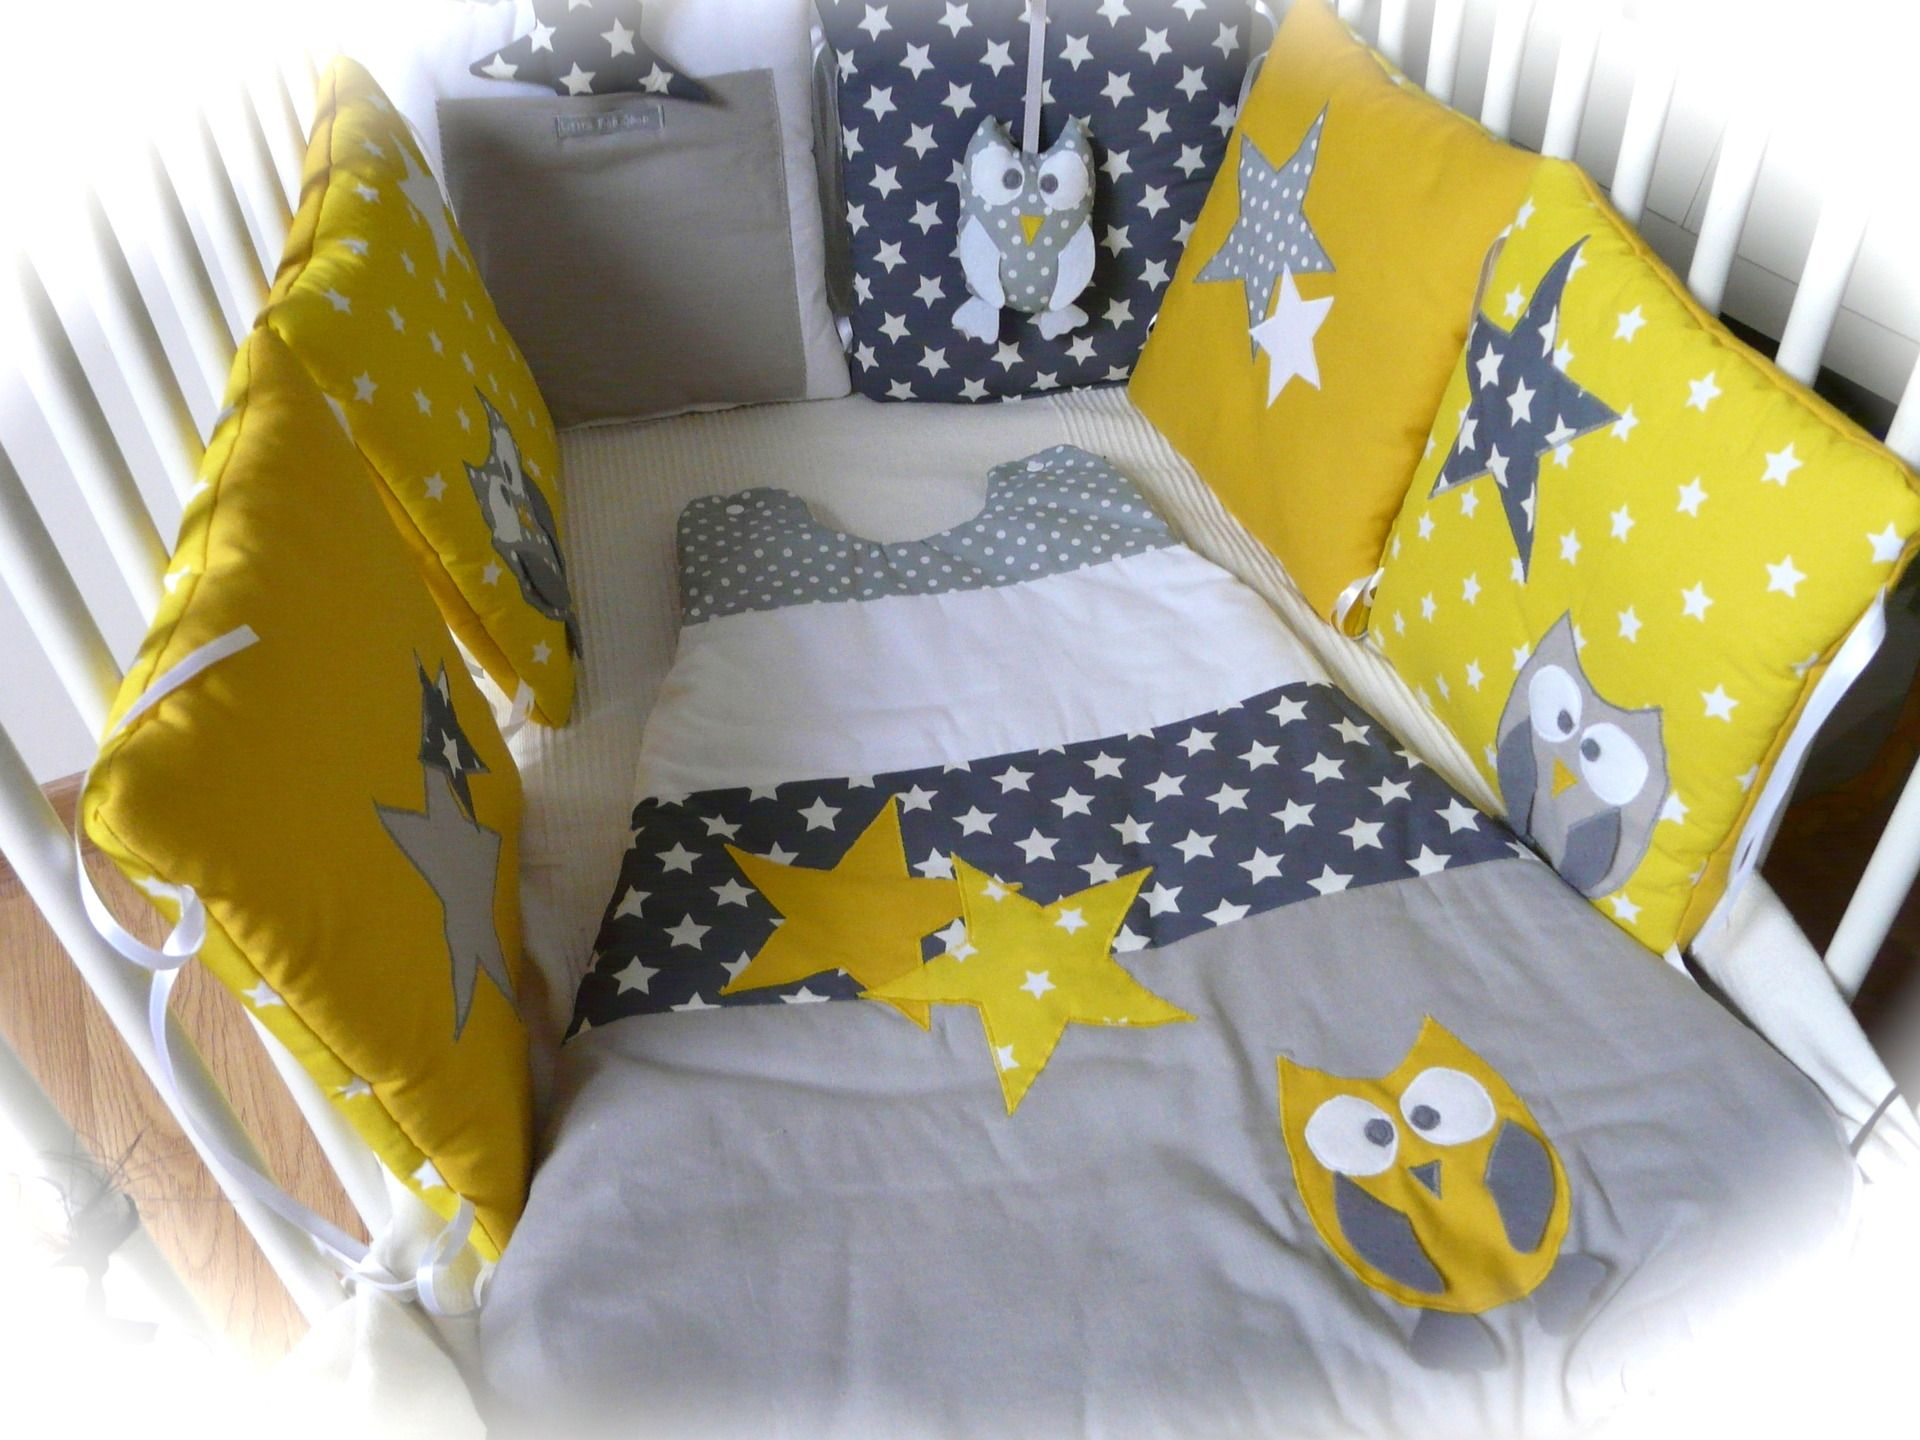 tour de lit chouettes et toiles jaune et gris b b. Black Bedroom Furniture Sets. Home Design Ideas